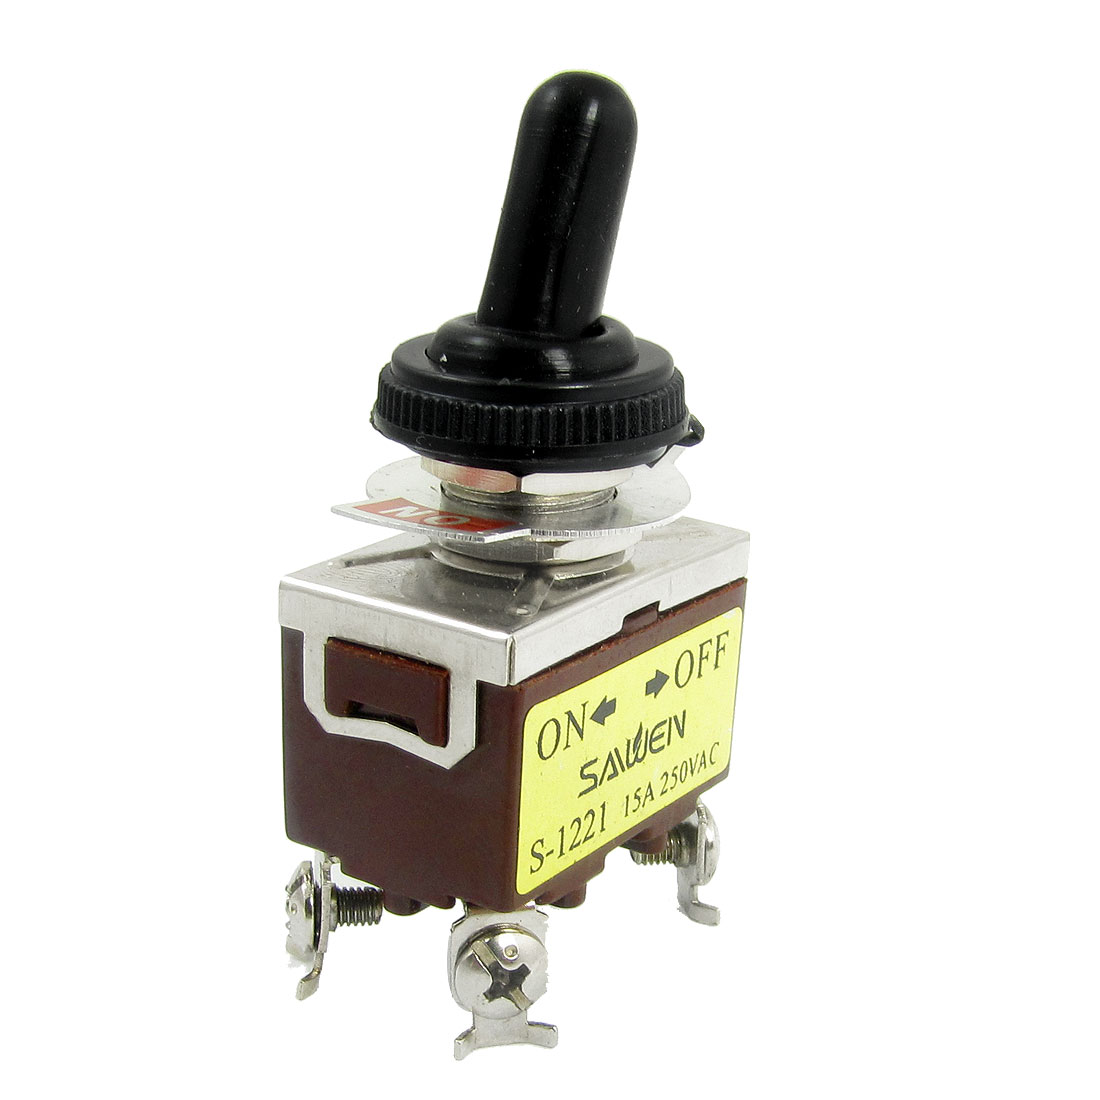 AC 250V 15A DPST On/Off 2 Way 4 Screw Terminals Toggle Switch w Waterproof Boot